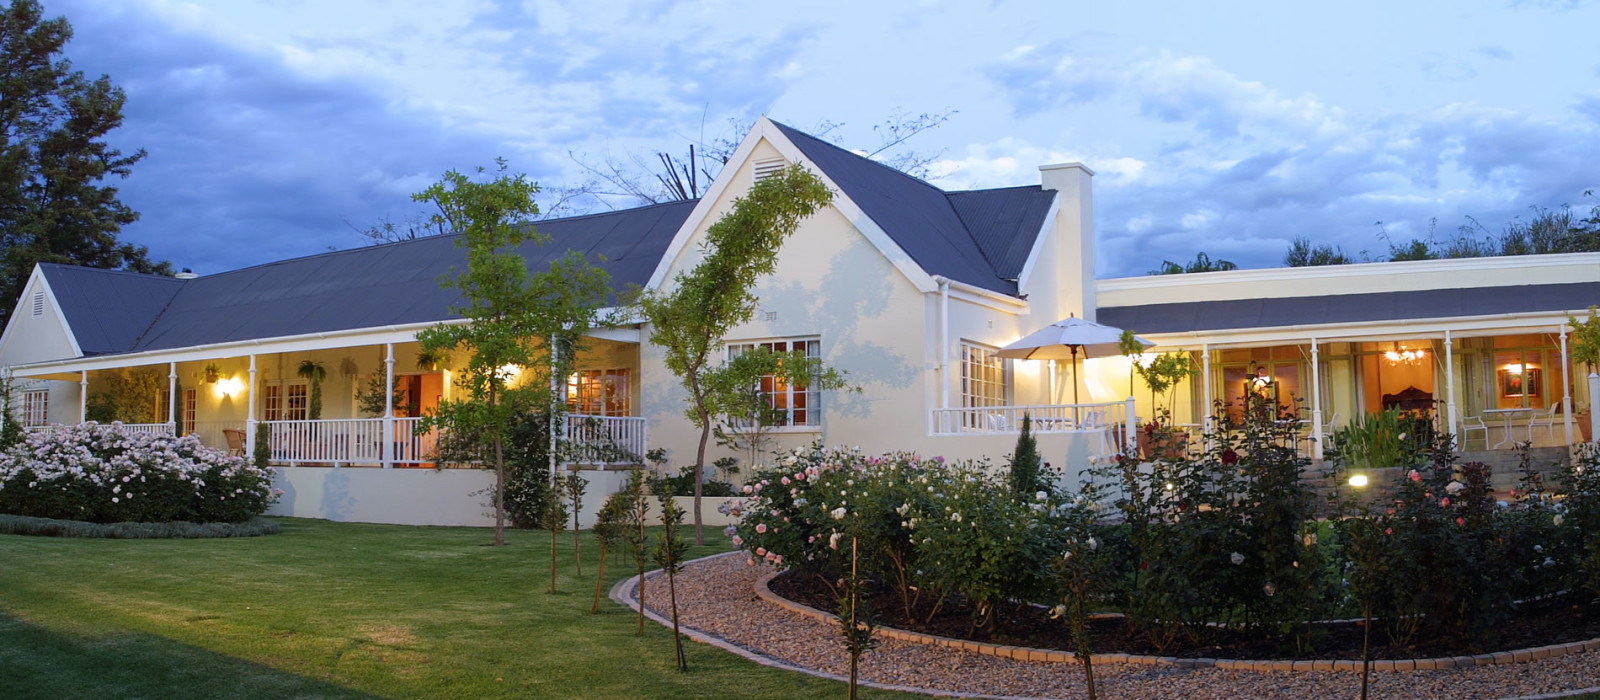 Hotel Rosenhof Country House South Africa